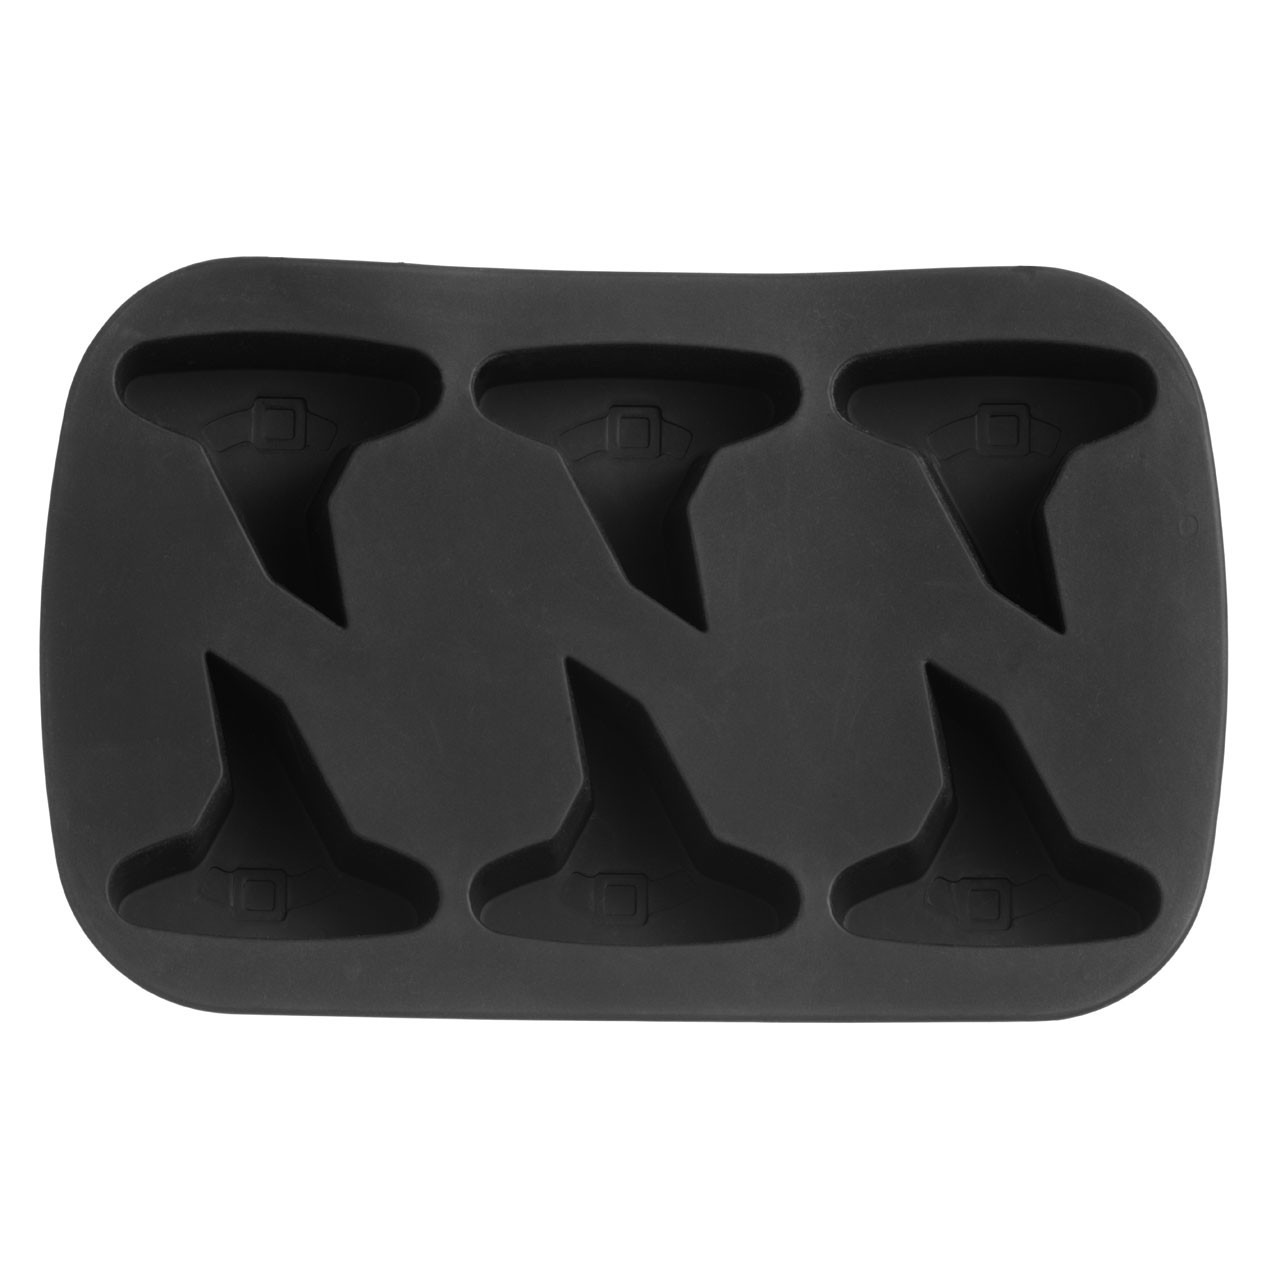 Cake Mould Silicone Witches Hat Cake Mould Heat Resistant